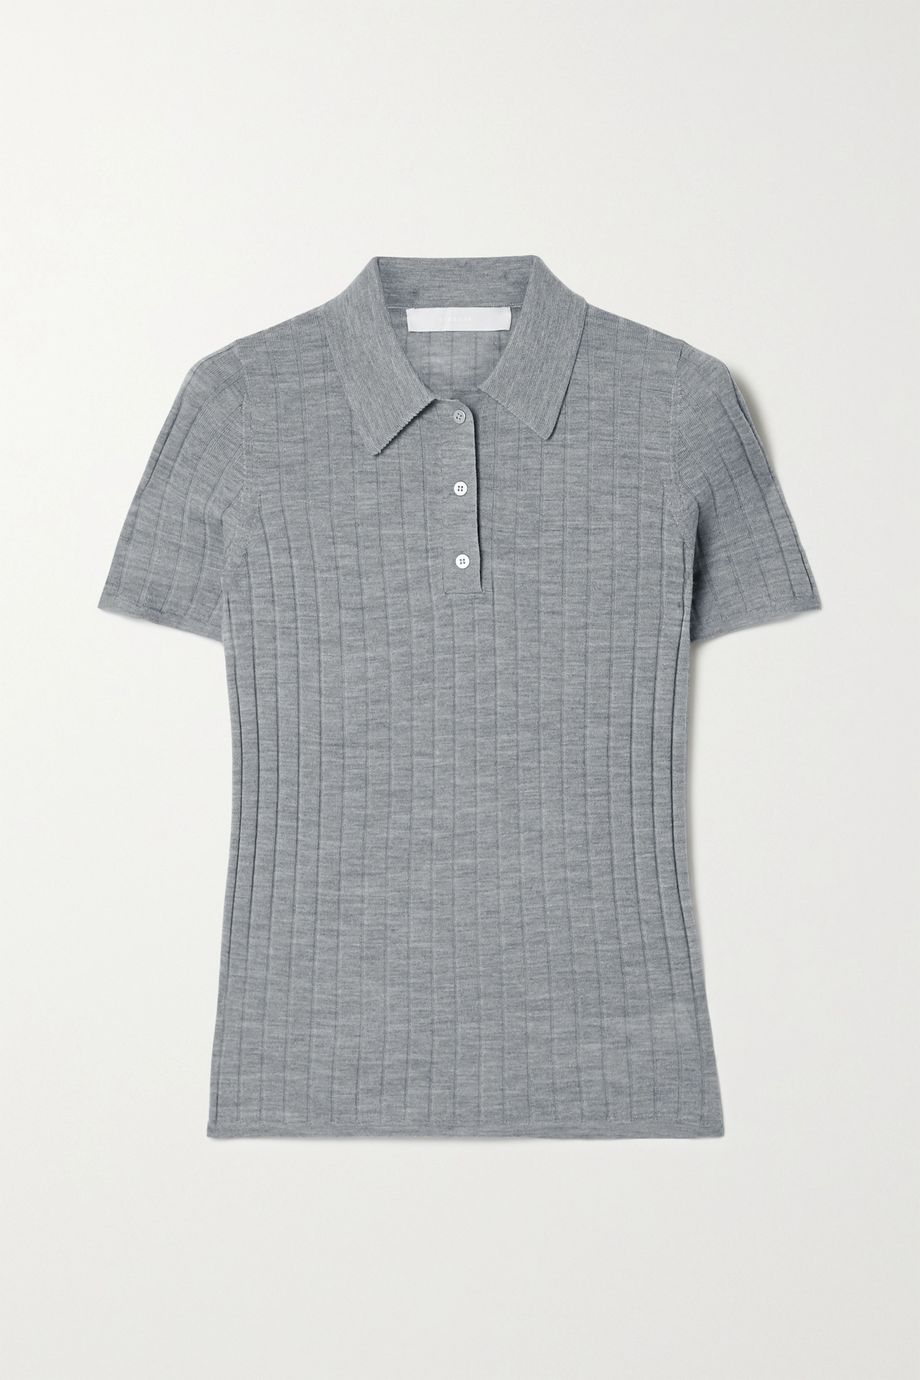 Dion Lee Ribbed merino wool polo shirt